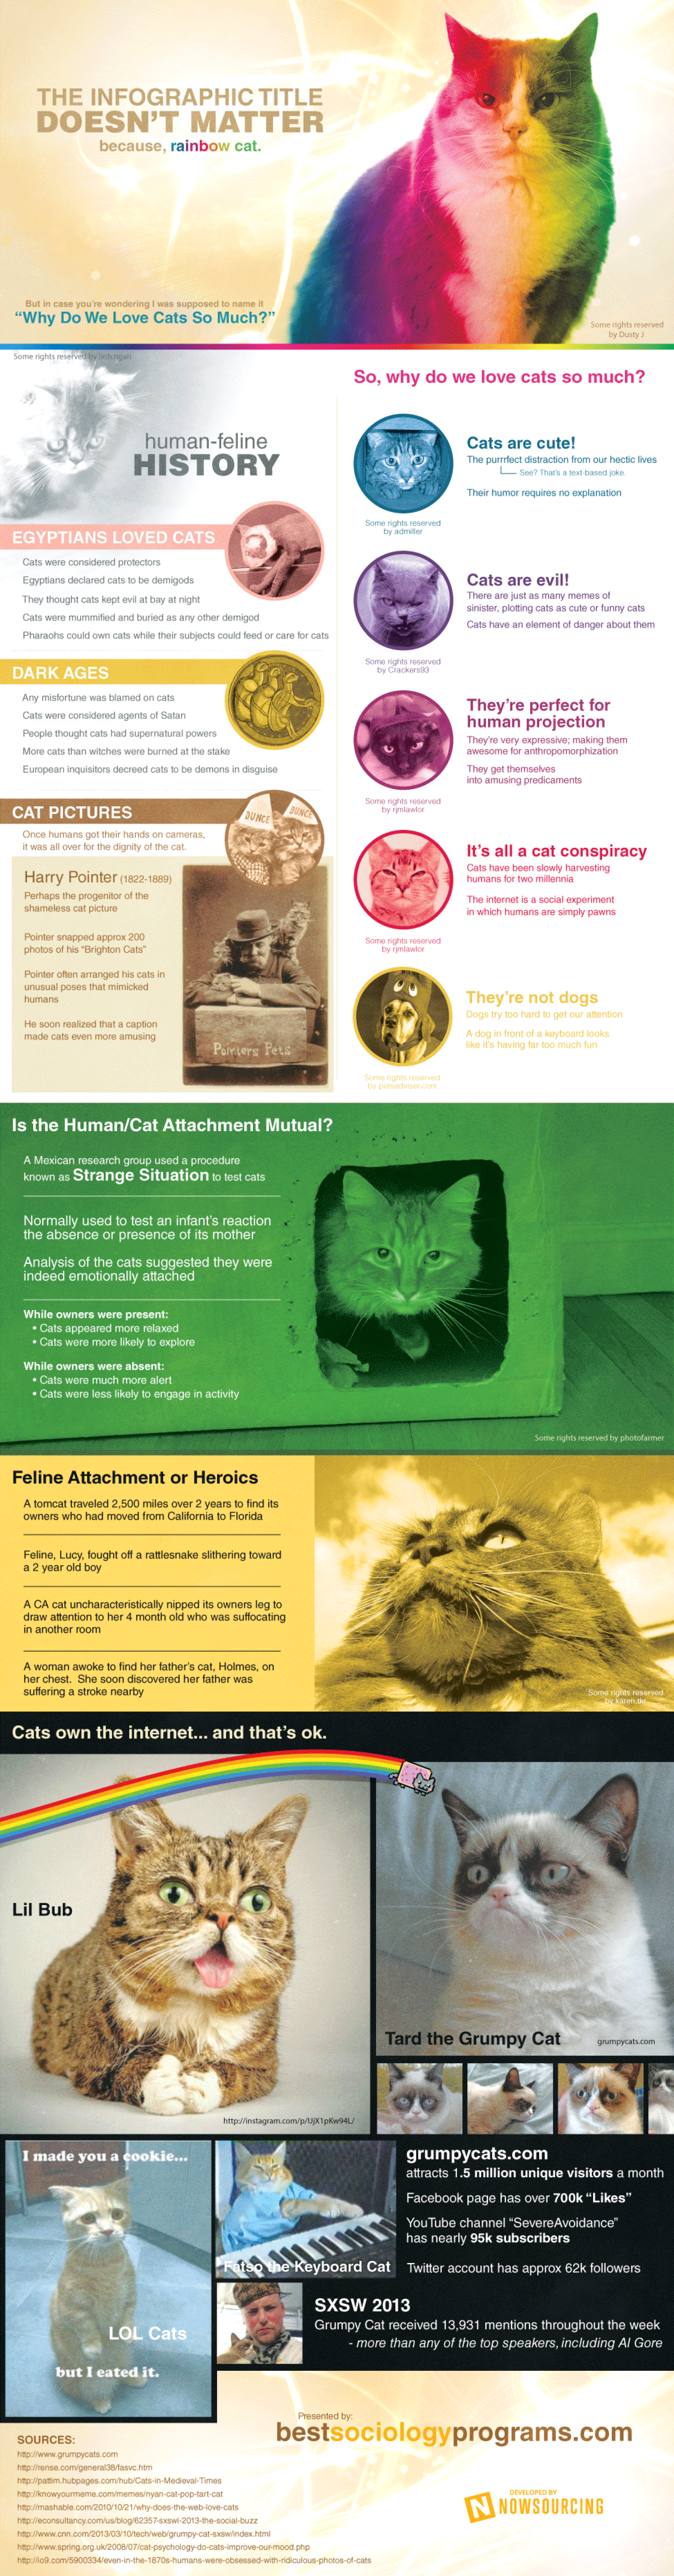 Why Do We Love Cats So Much? Infographic